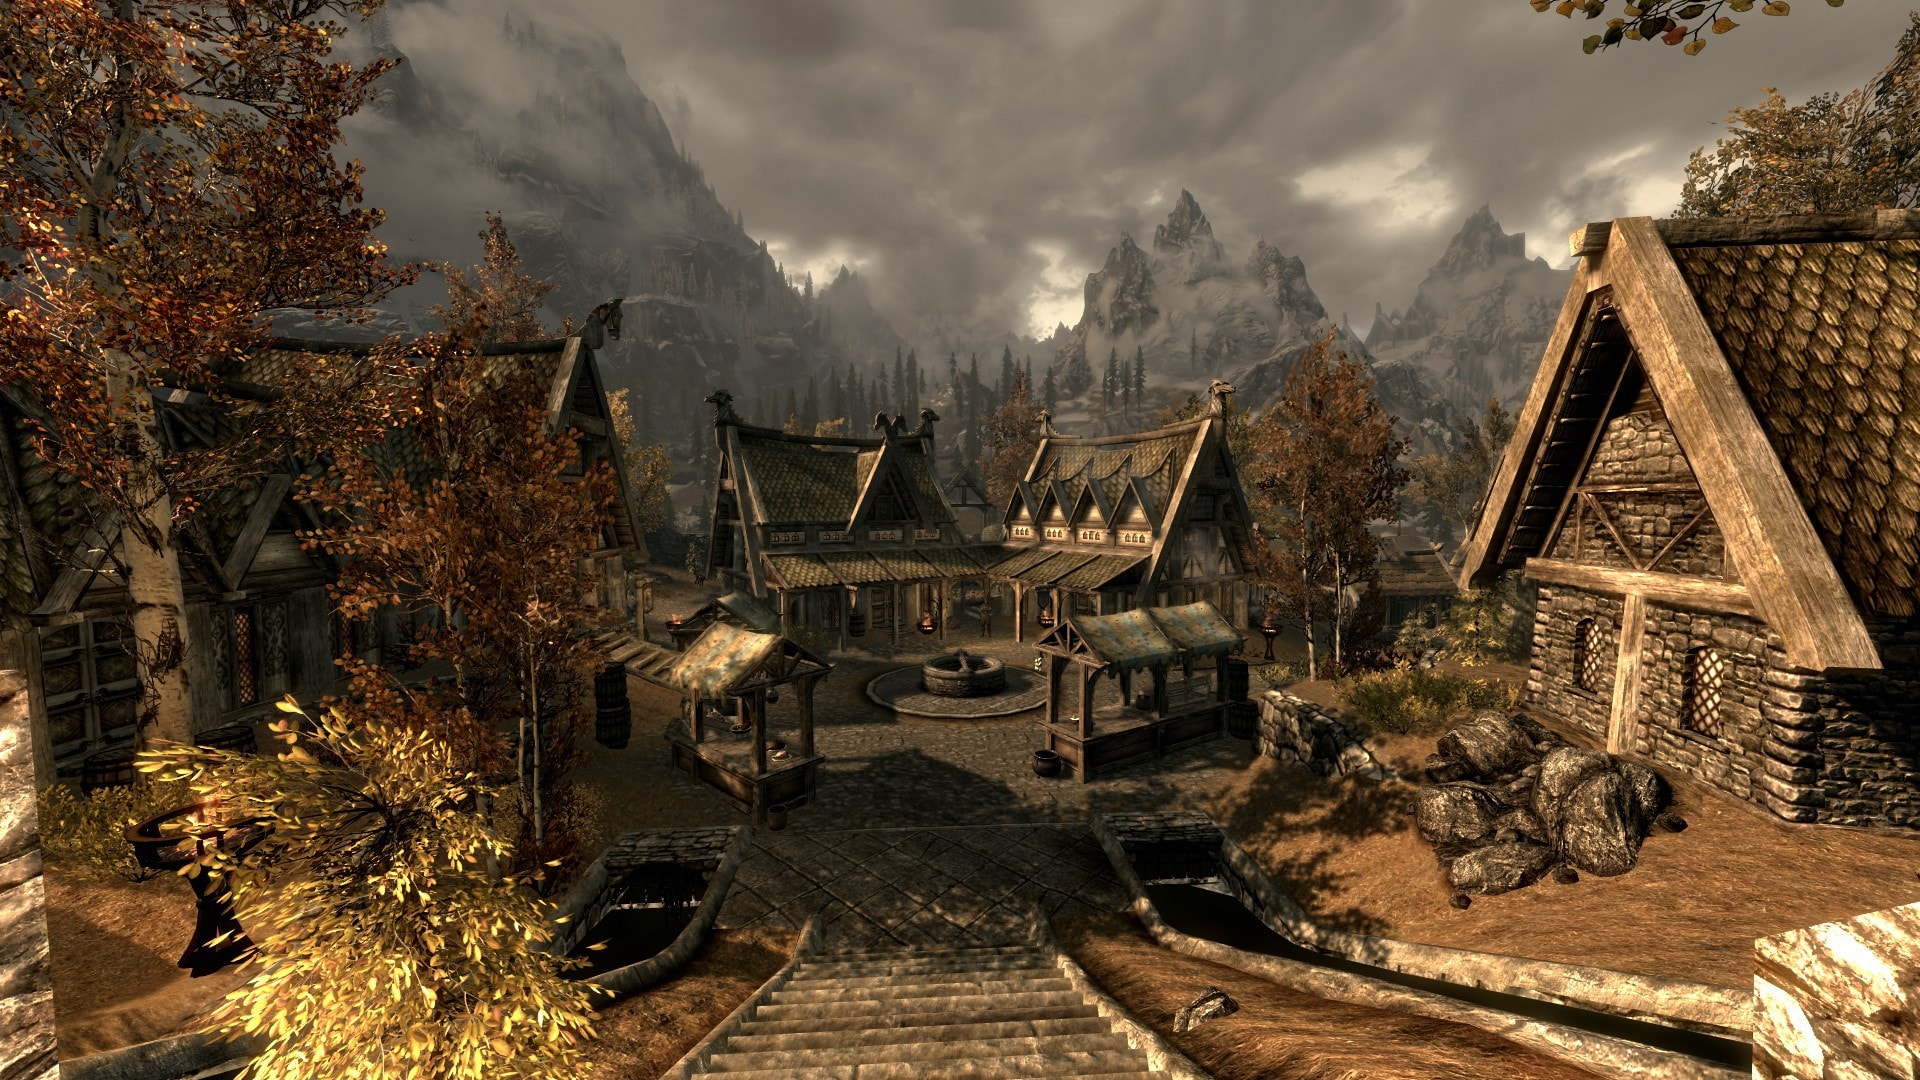 Skyrim Full Hd Wallpaper